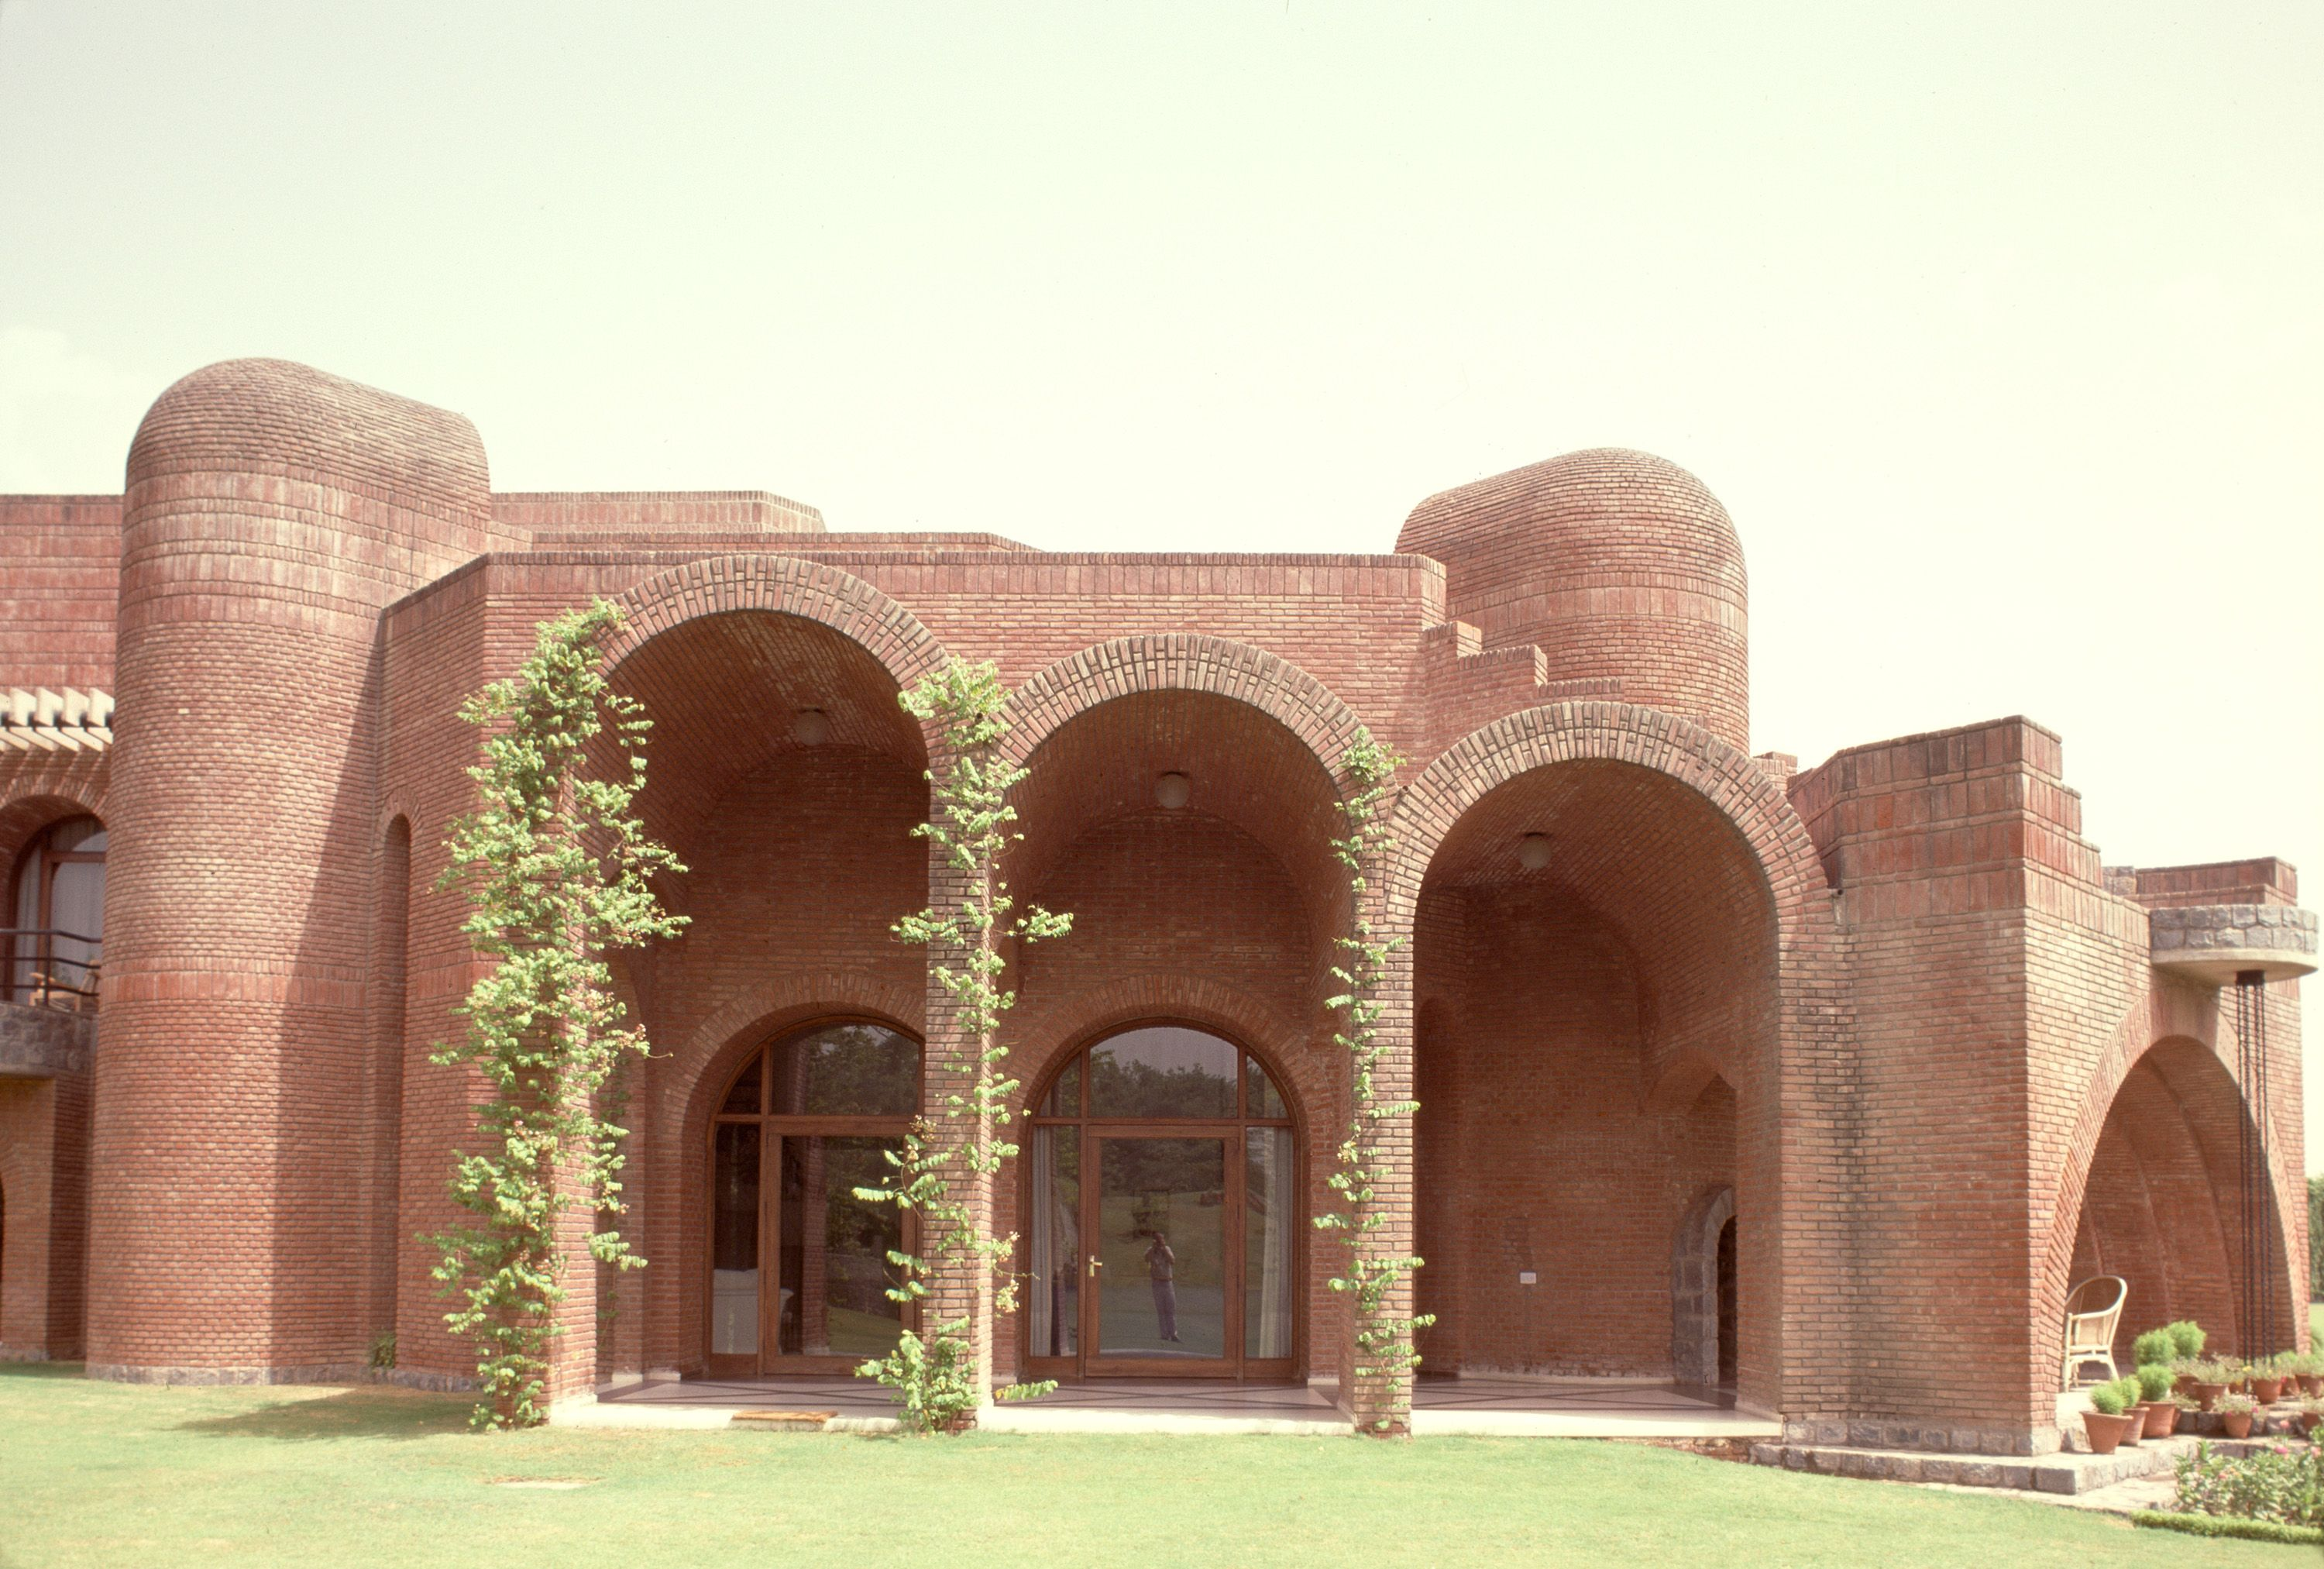 Marvelous Belgian Embassy | 1985 | New Delhi, India | Architect Satish Gujral